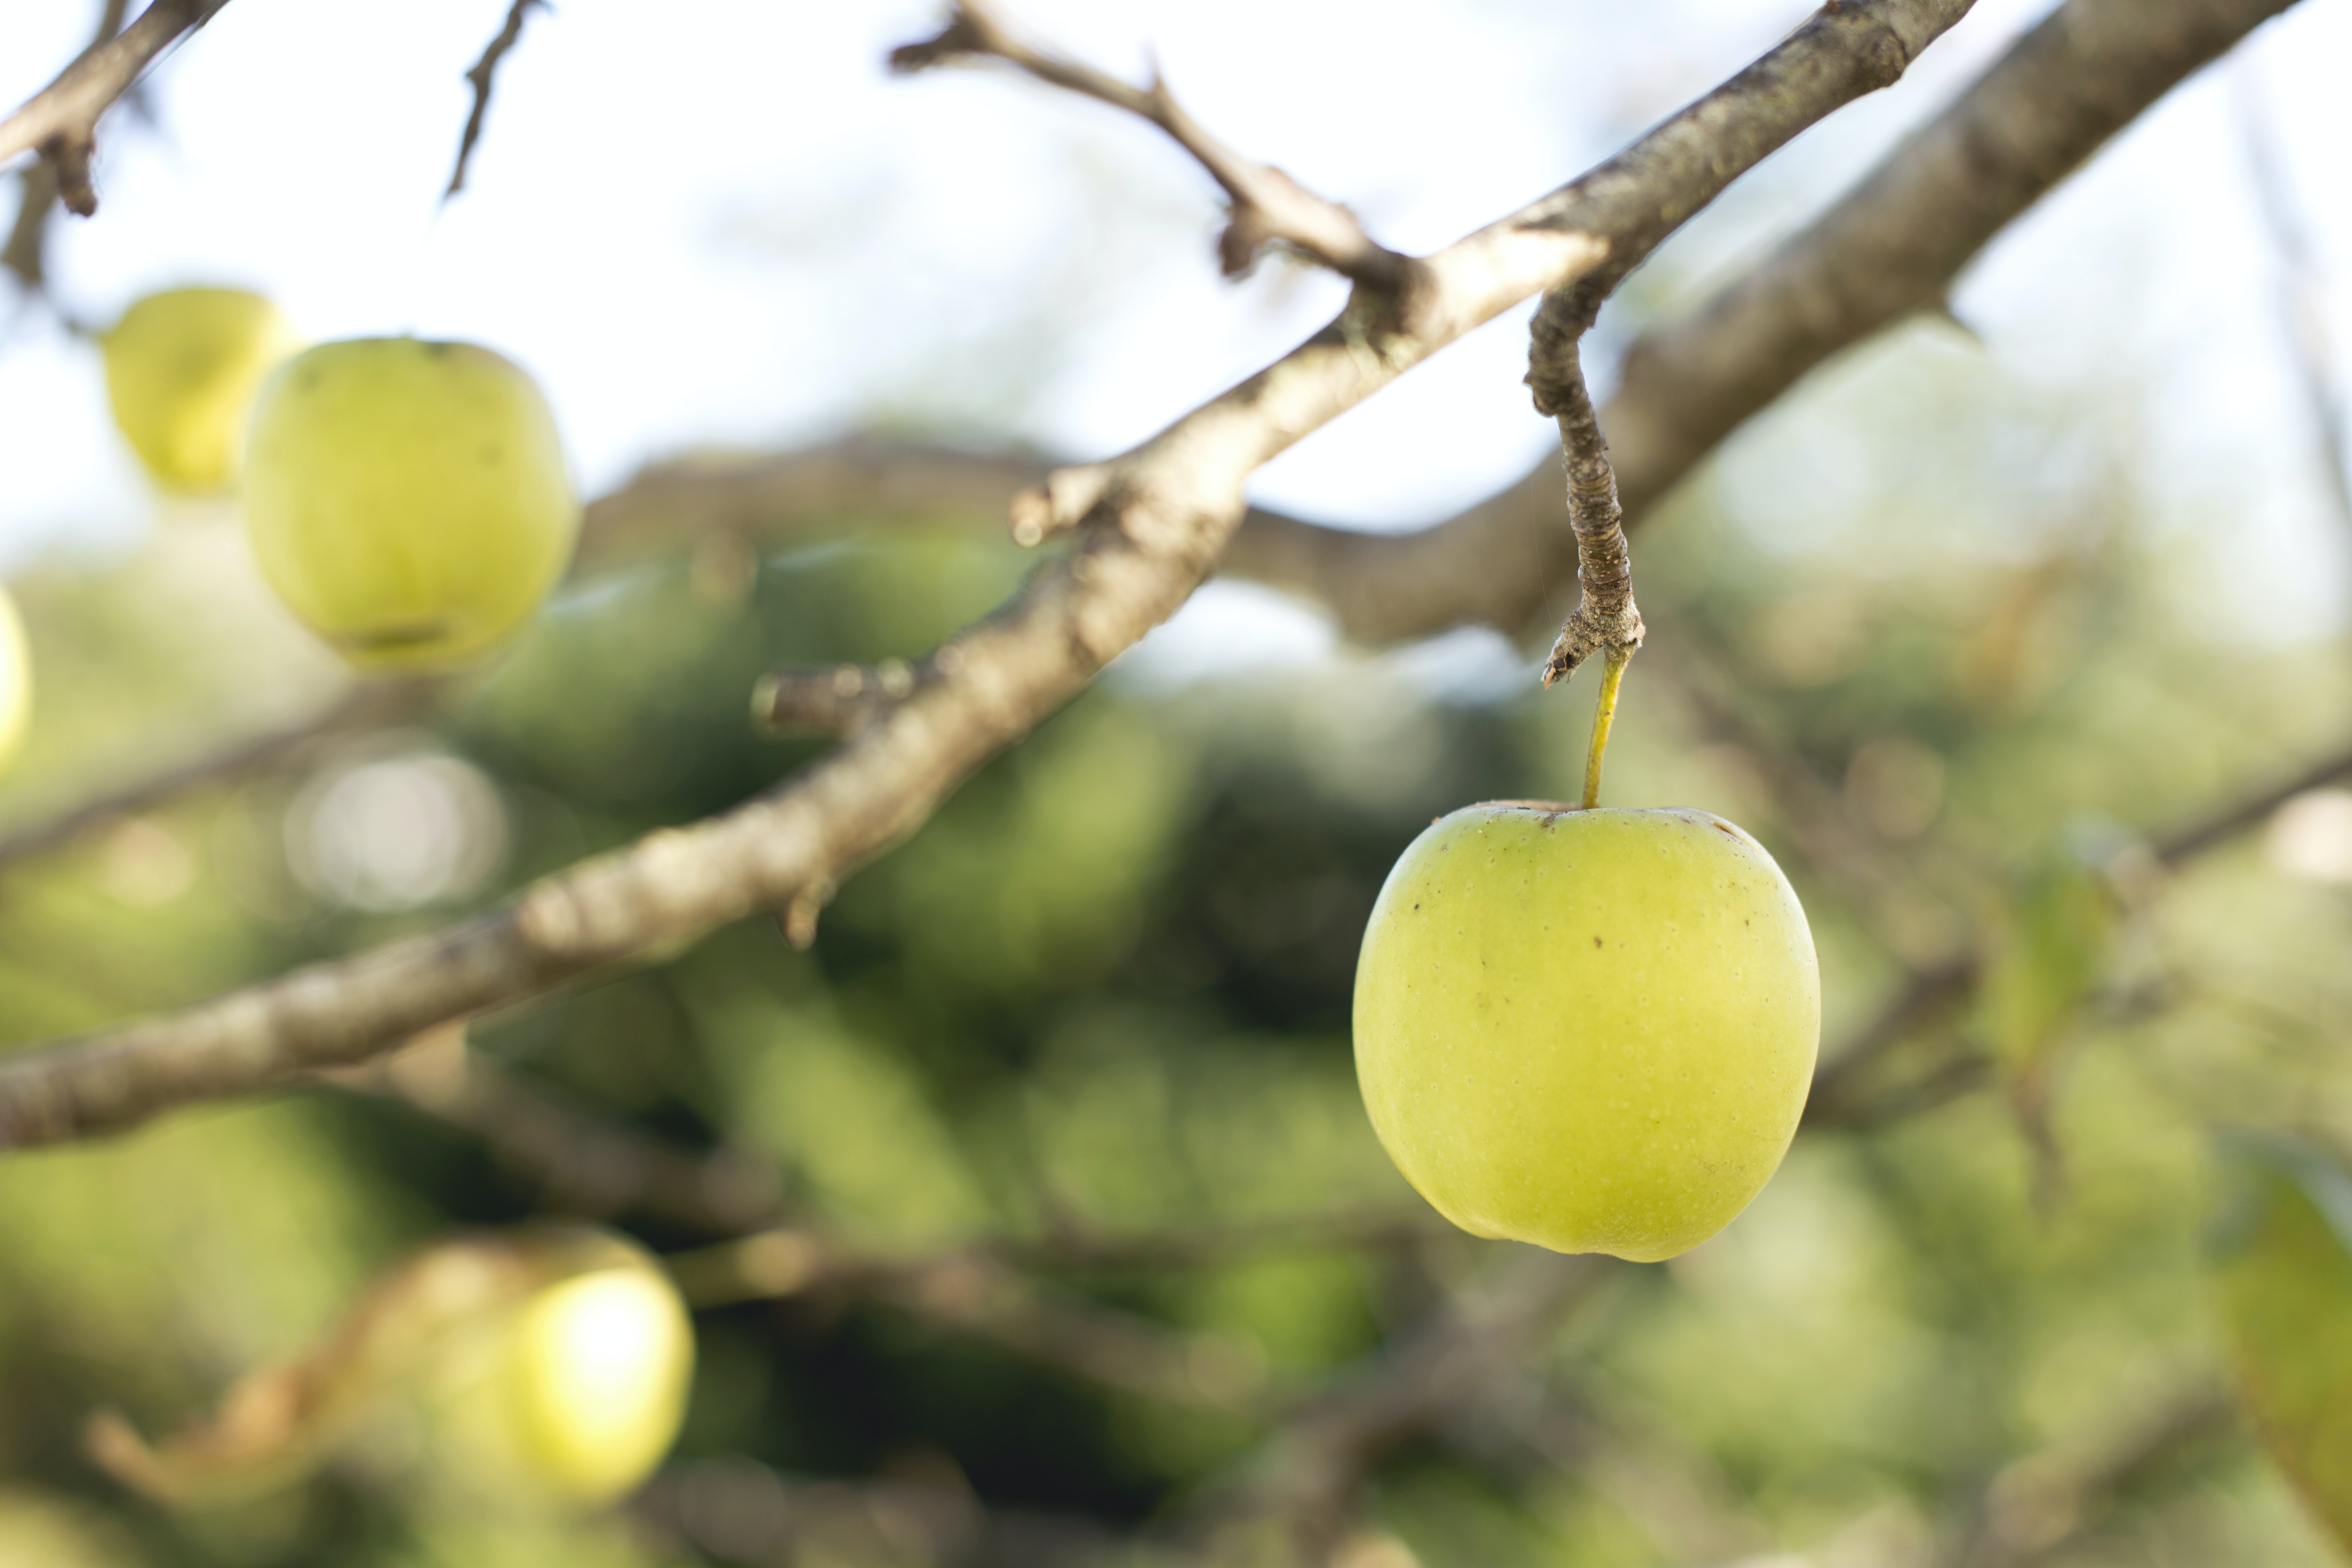 Fresh green apples growing on a tree in an orchard